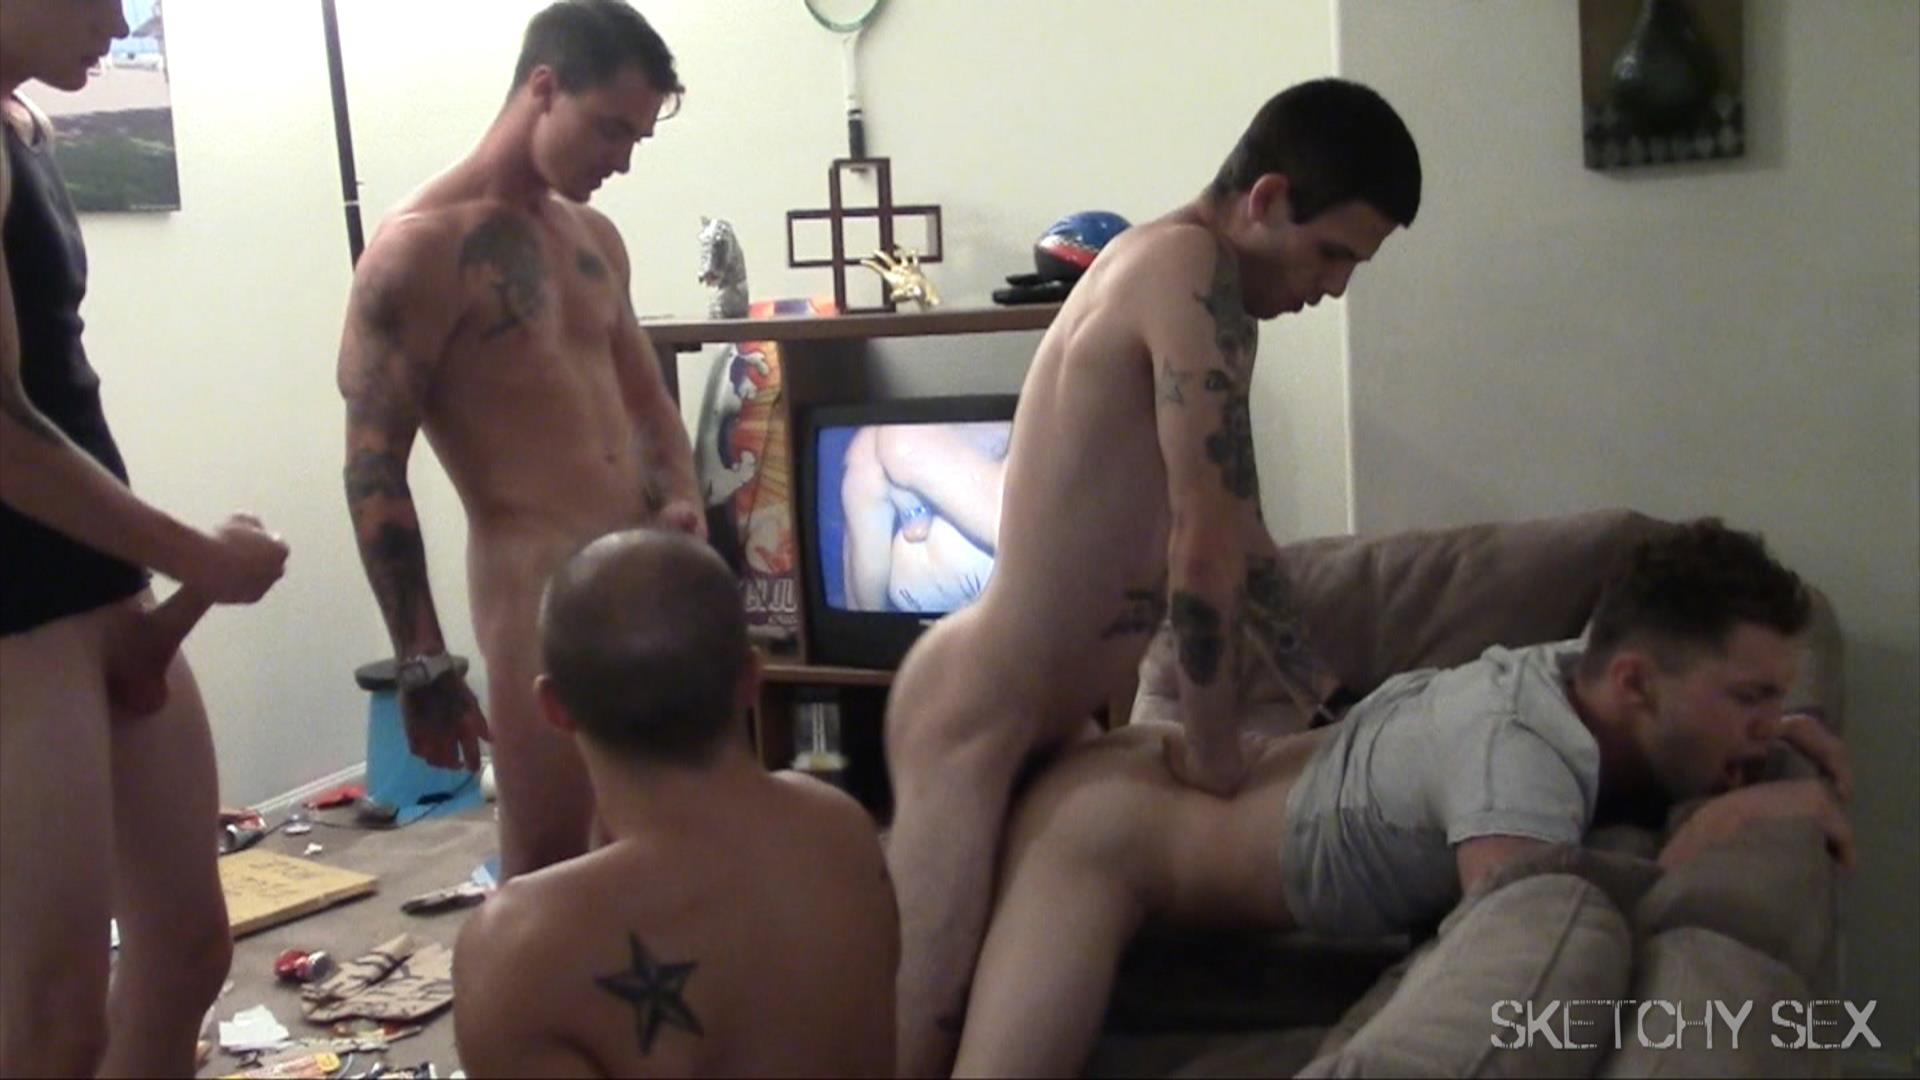 Sketchy Sex Bareback Breeding Party Amateur Gay Porn 14 Hosting An Anonymous Bareback Breeding Party